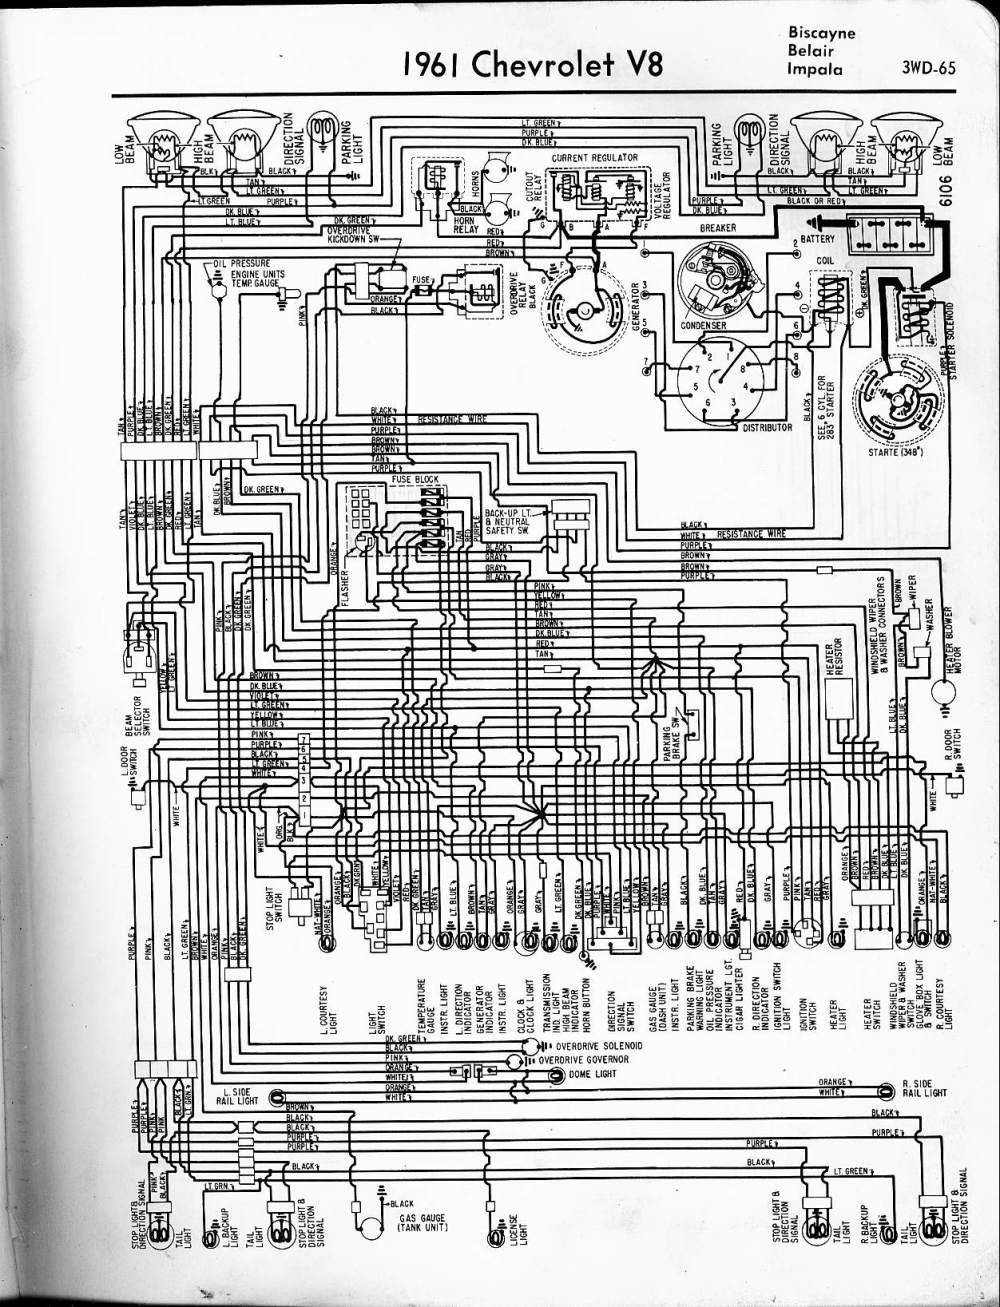 medium resolution of 1964 corvette fuse box diagram manual e book1963 chevy impala 4 door sedan 283 dash wiring